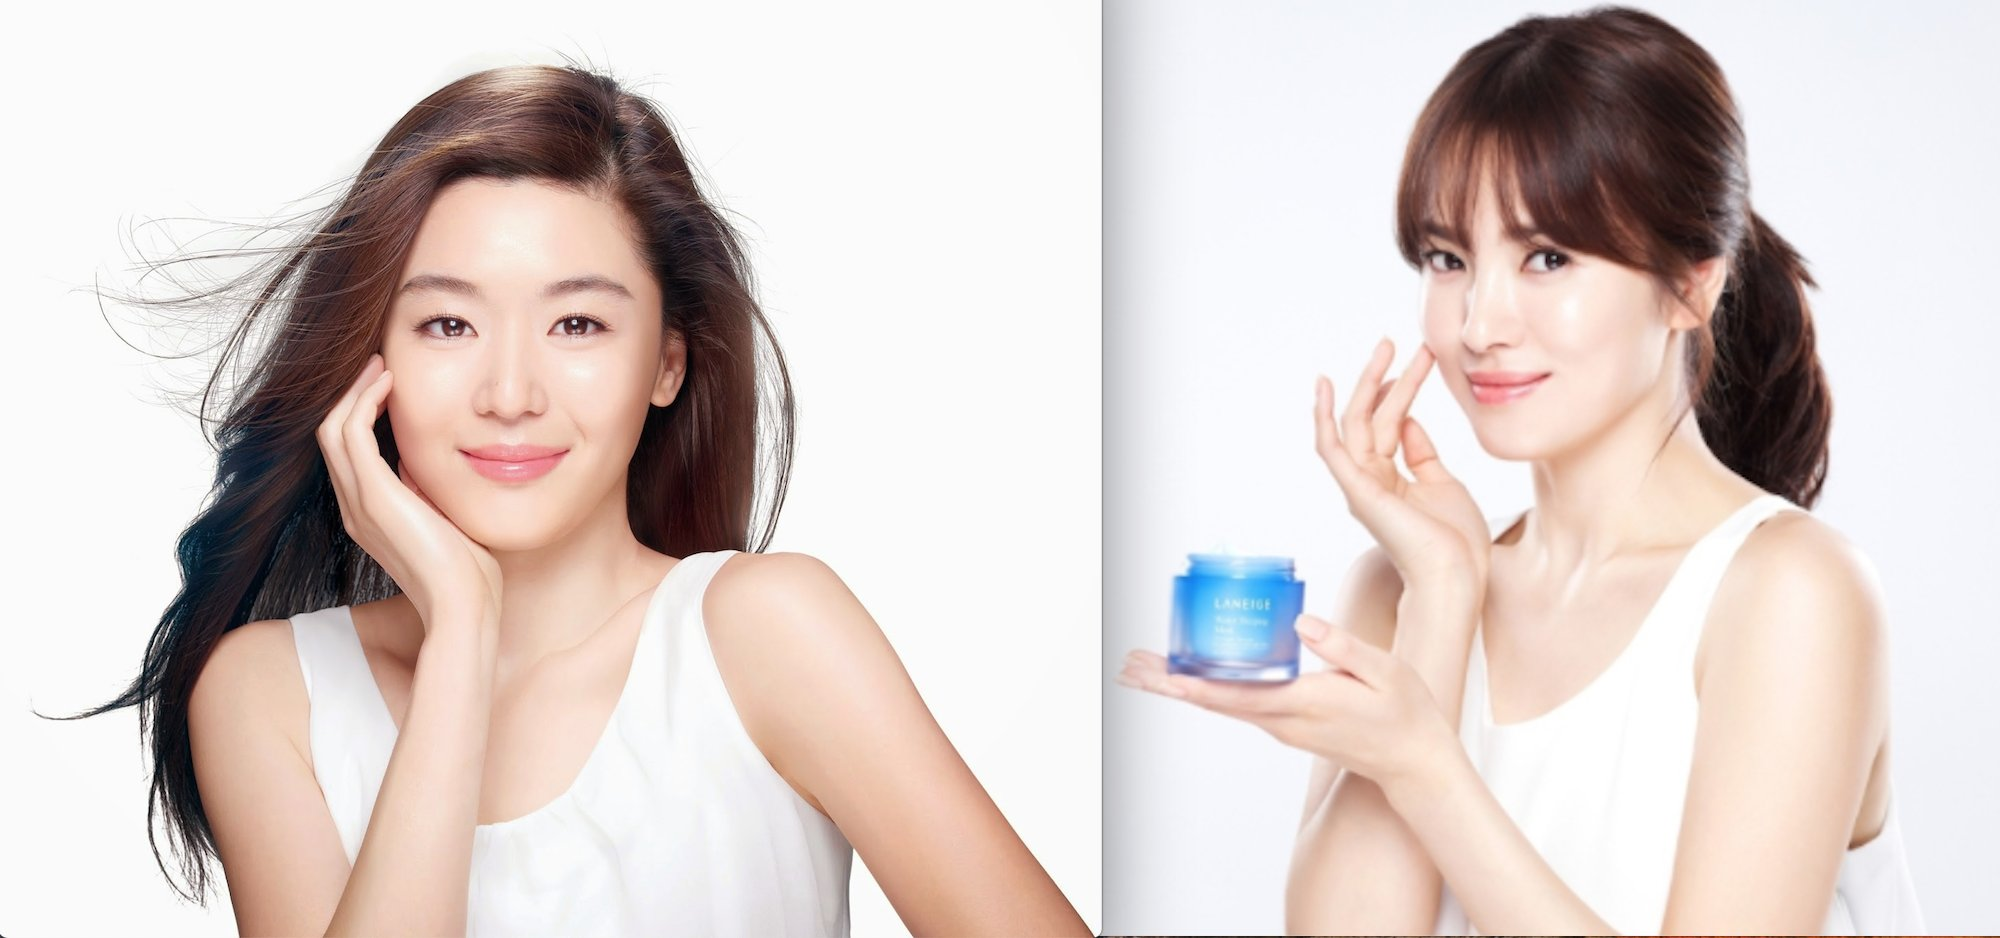 screen shot 2018 08 13 at 2 01 25 pm.png?resize=1200,630 - 10 Rules of Skin Care That Help Korean Women Look So Young